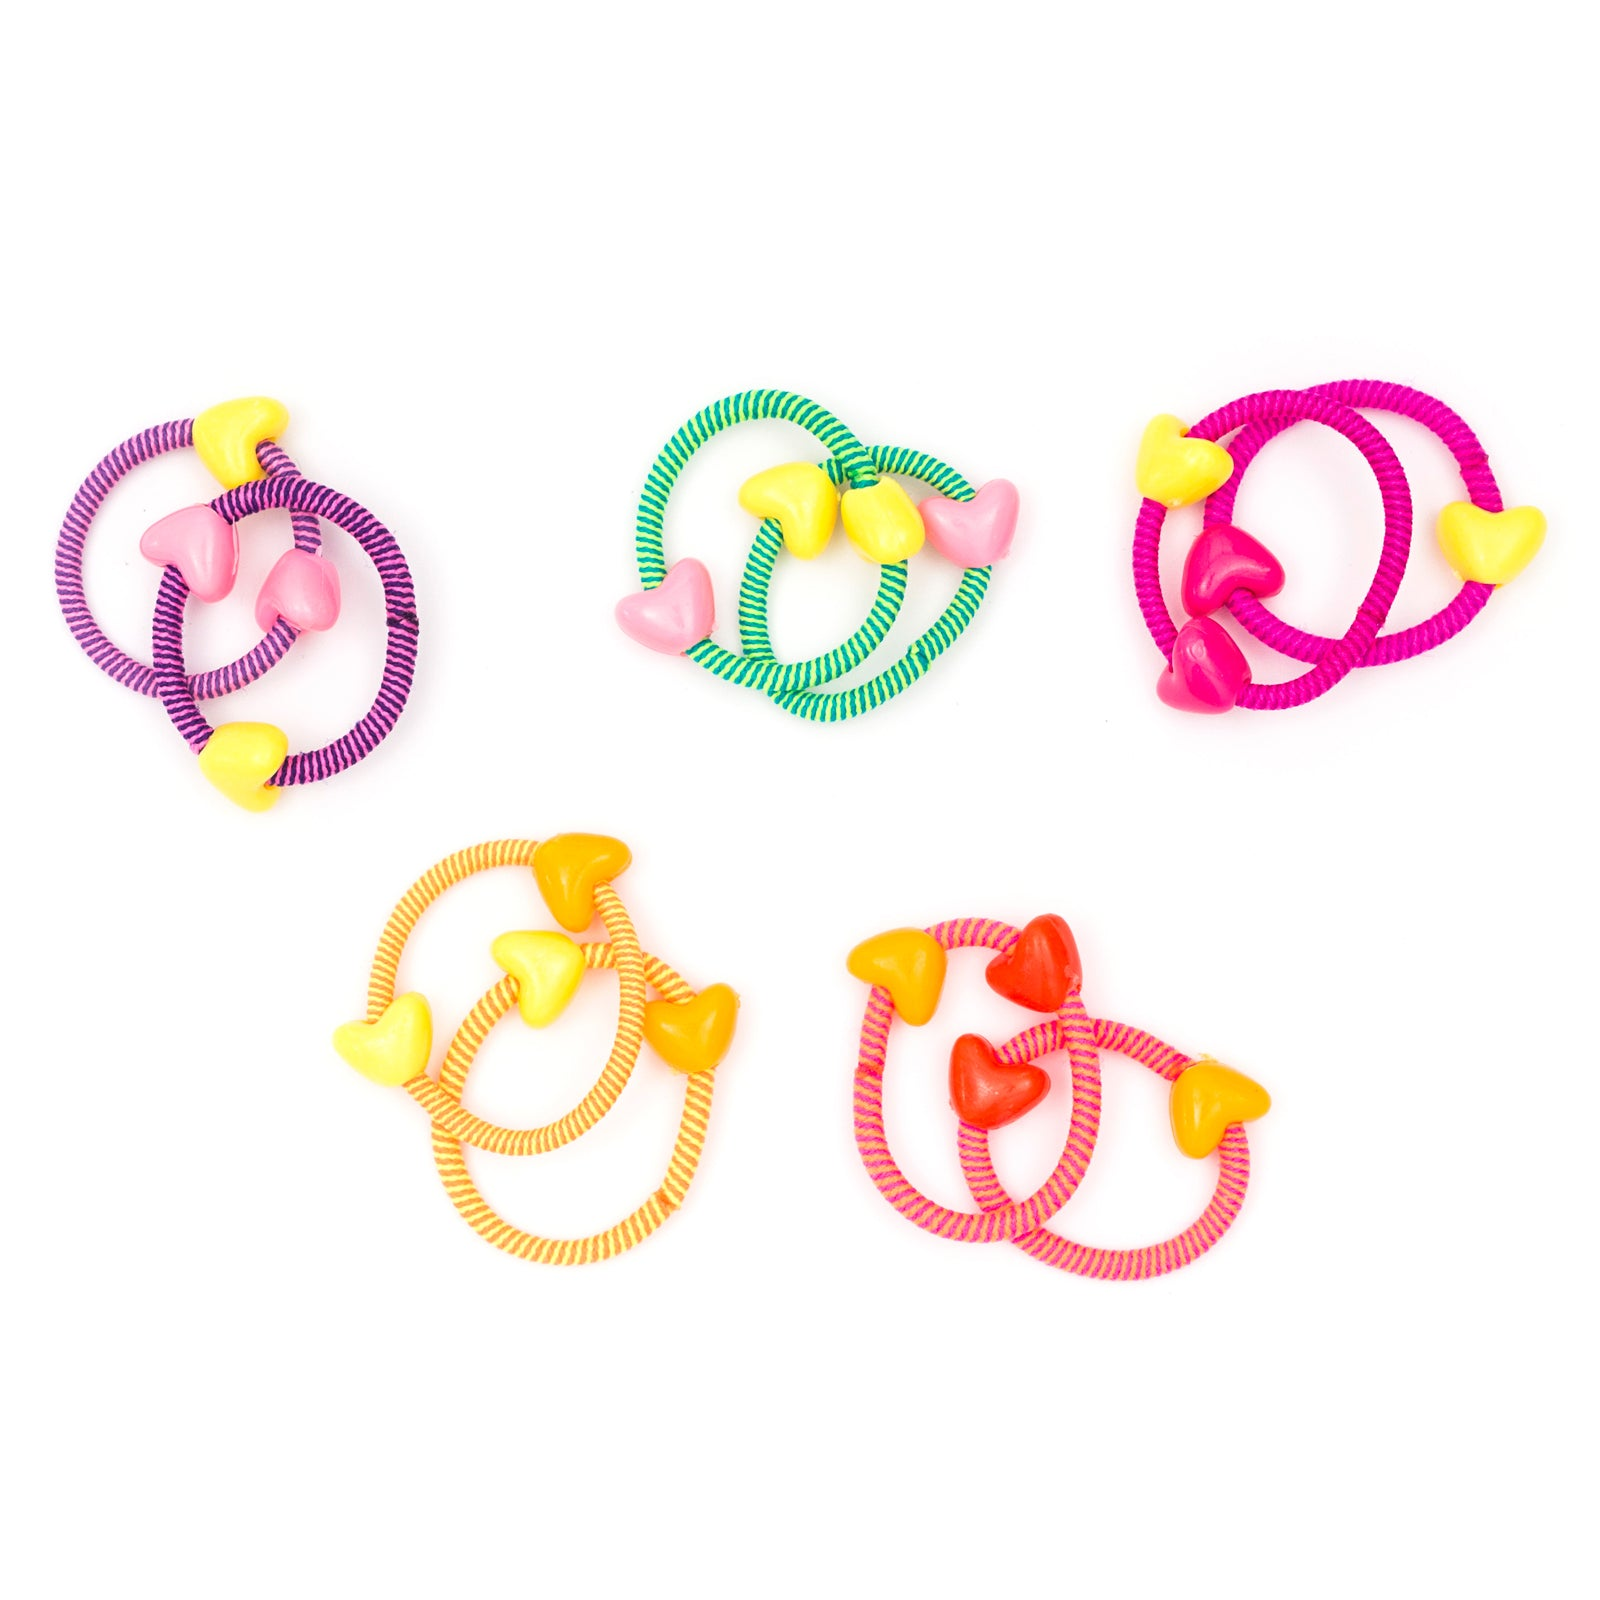 Tiny hearts small hair ties